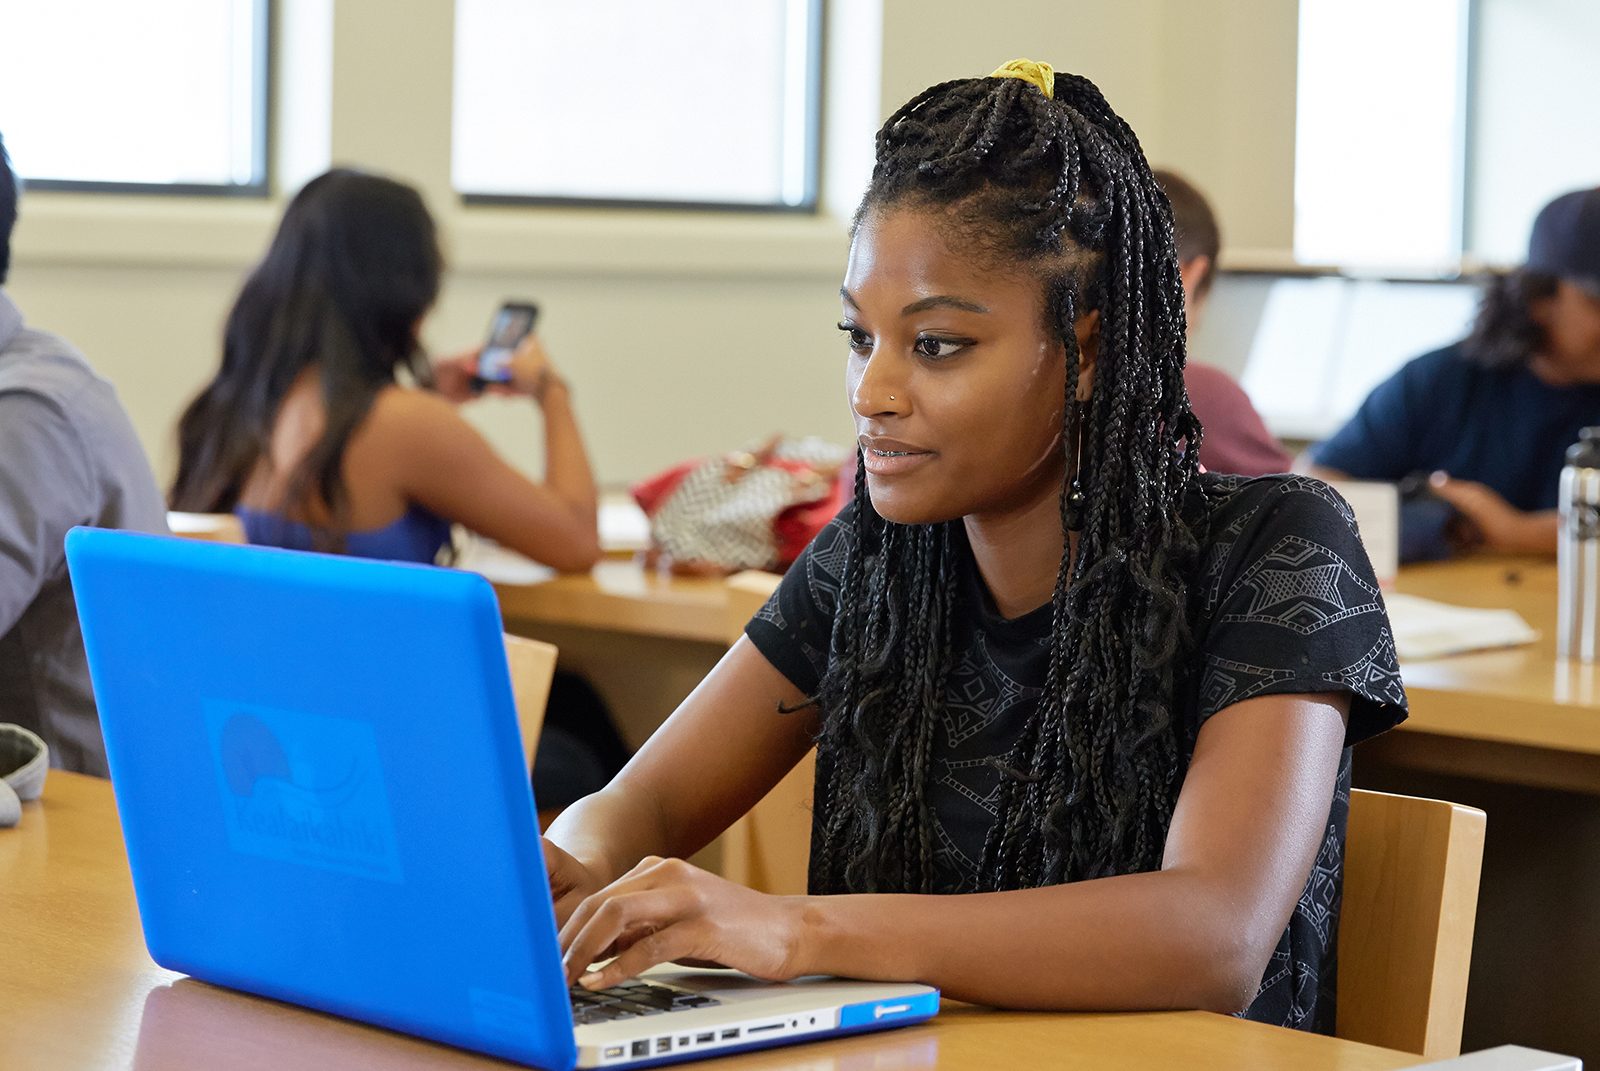 Student sitting in front of a blue laptop.